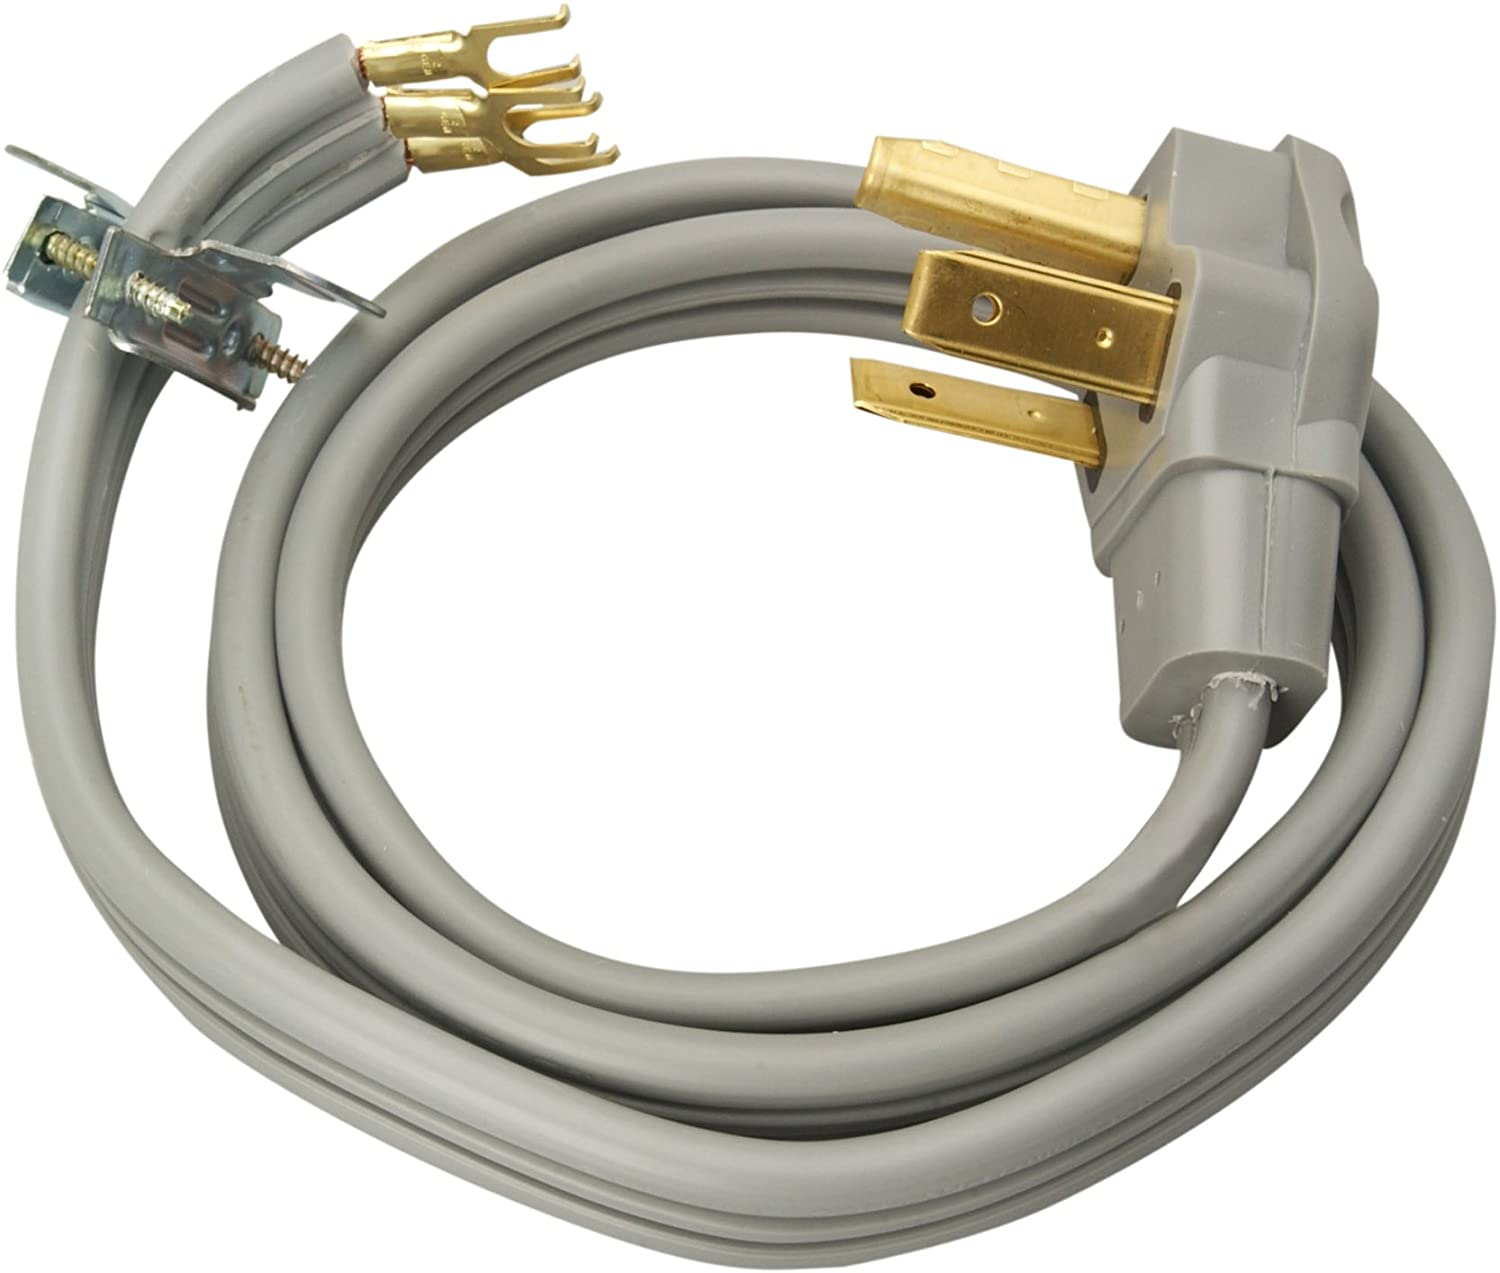 Coleman Cable 09126 30-Amp 3-Wire Dryer Power Cord, 6-Foot